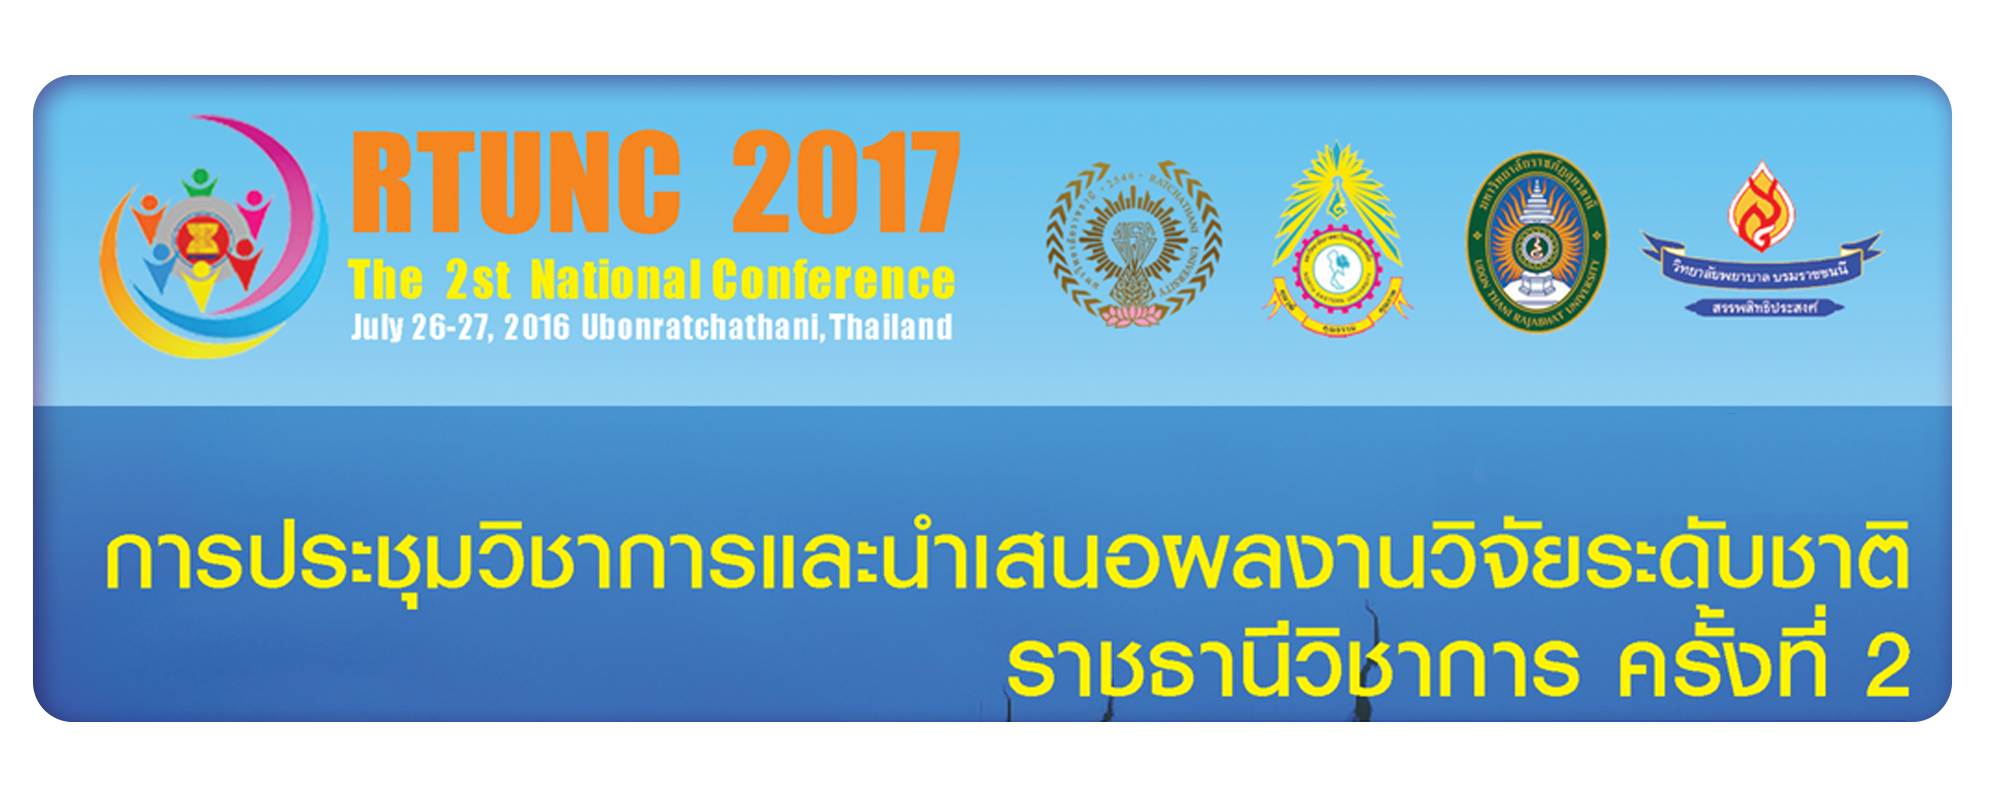 Go to http://rtunc2017.rtu.ac.th/